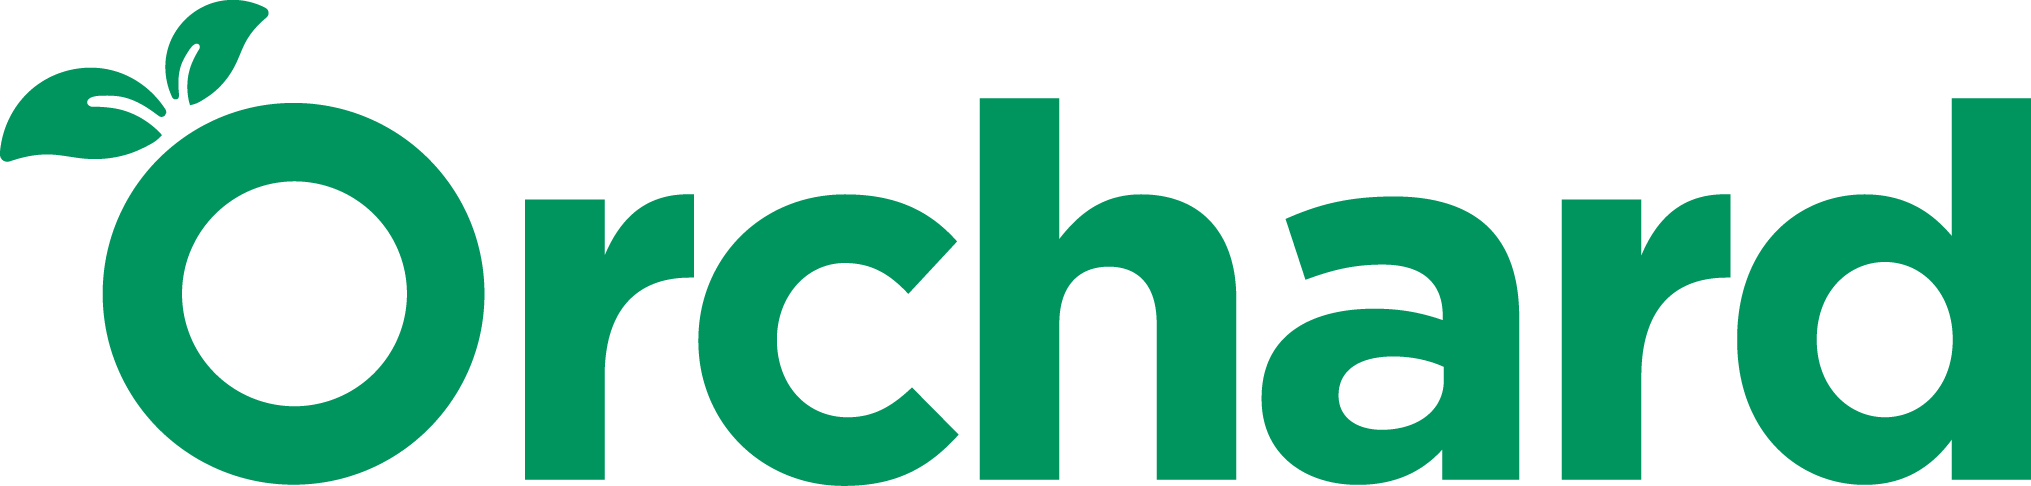 Orchard_Logo_Full_Green_WhiteBG (6)